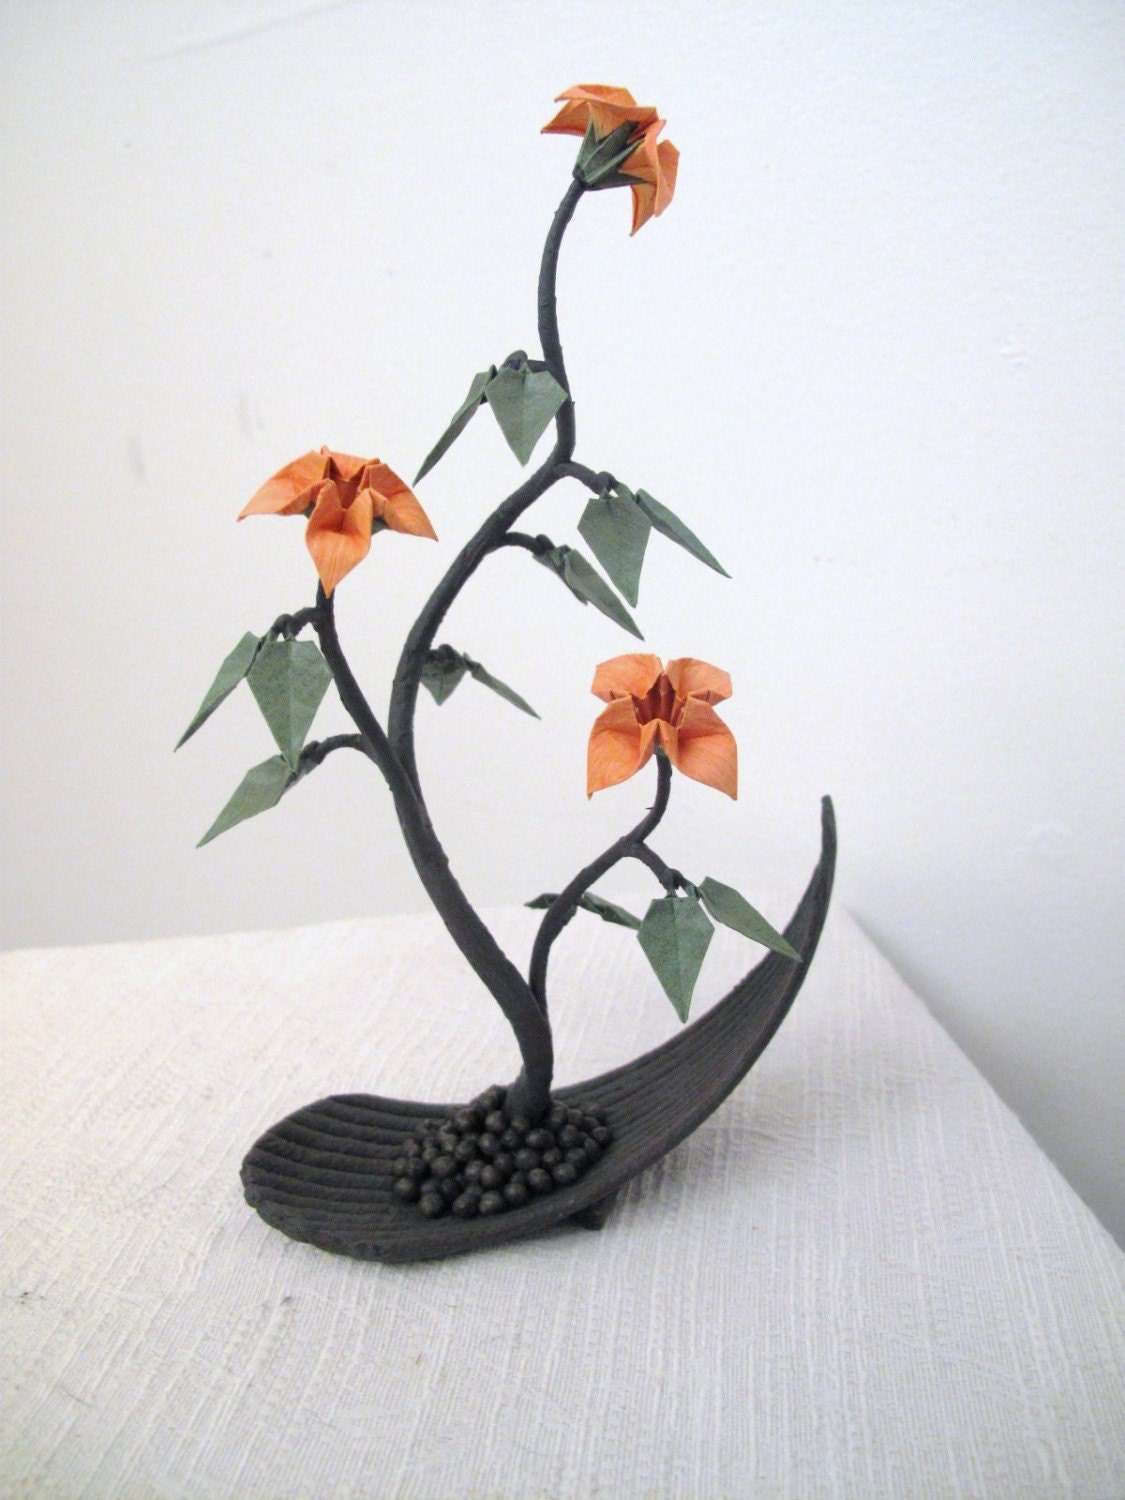 Origami Bonsai with Peach Flowers in a Cool Planter - photo#38